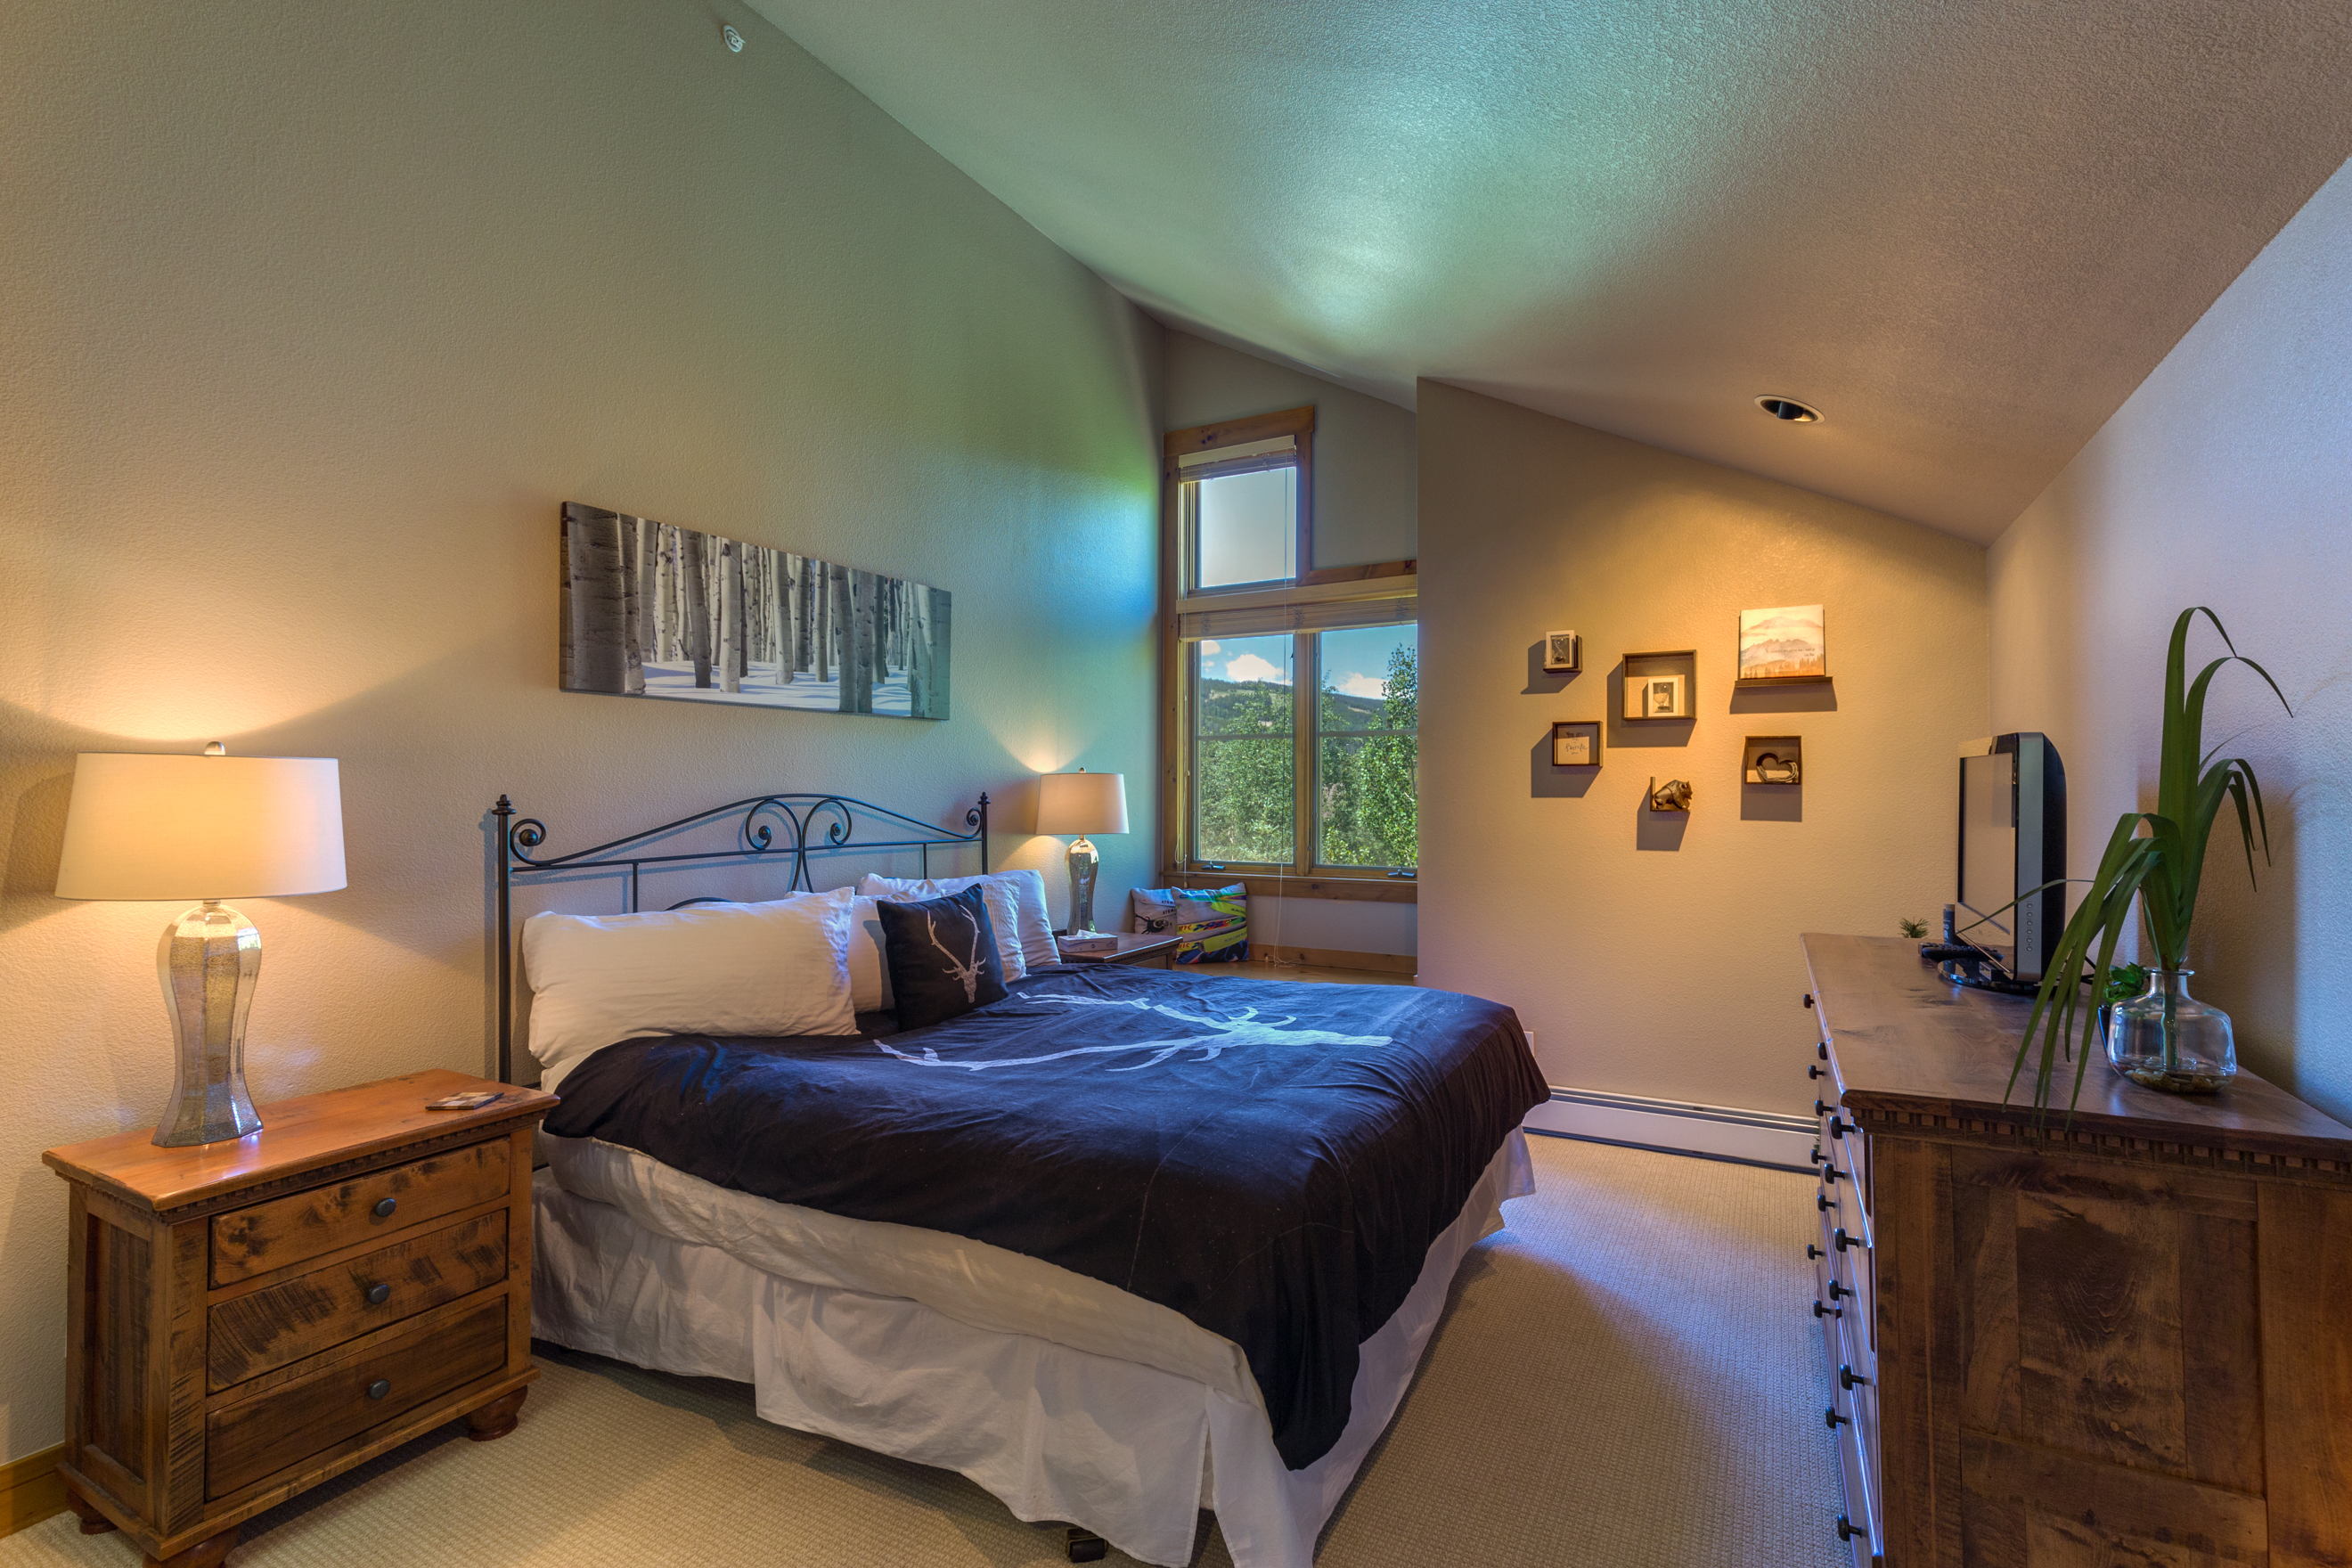 The master bedroom features a king-sized bed with Ivory White Bedding, a flat screen TV and a window seat with beautiful views.